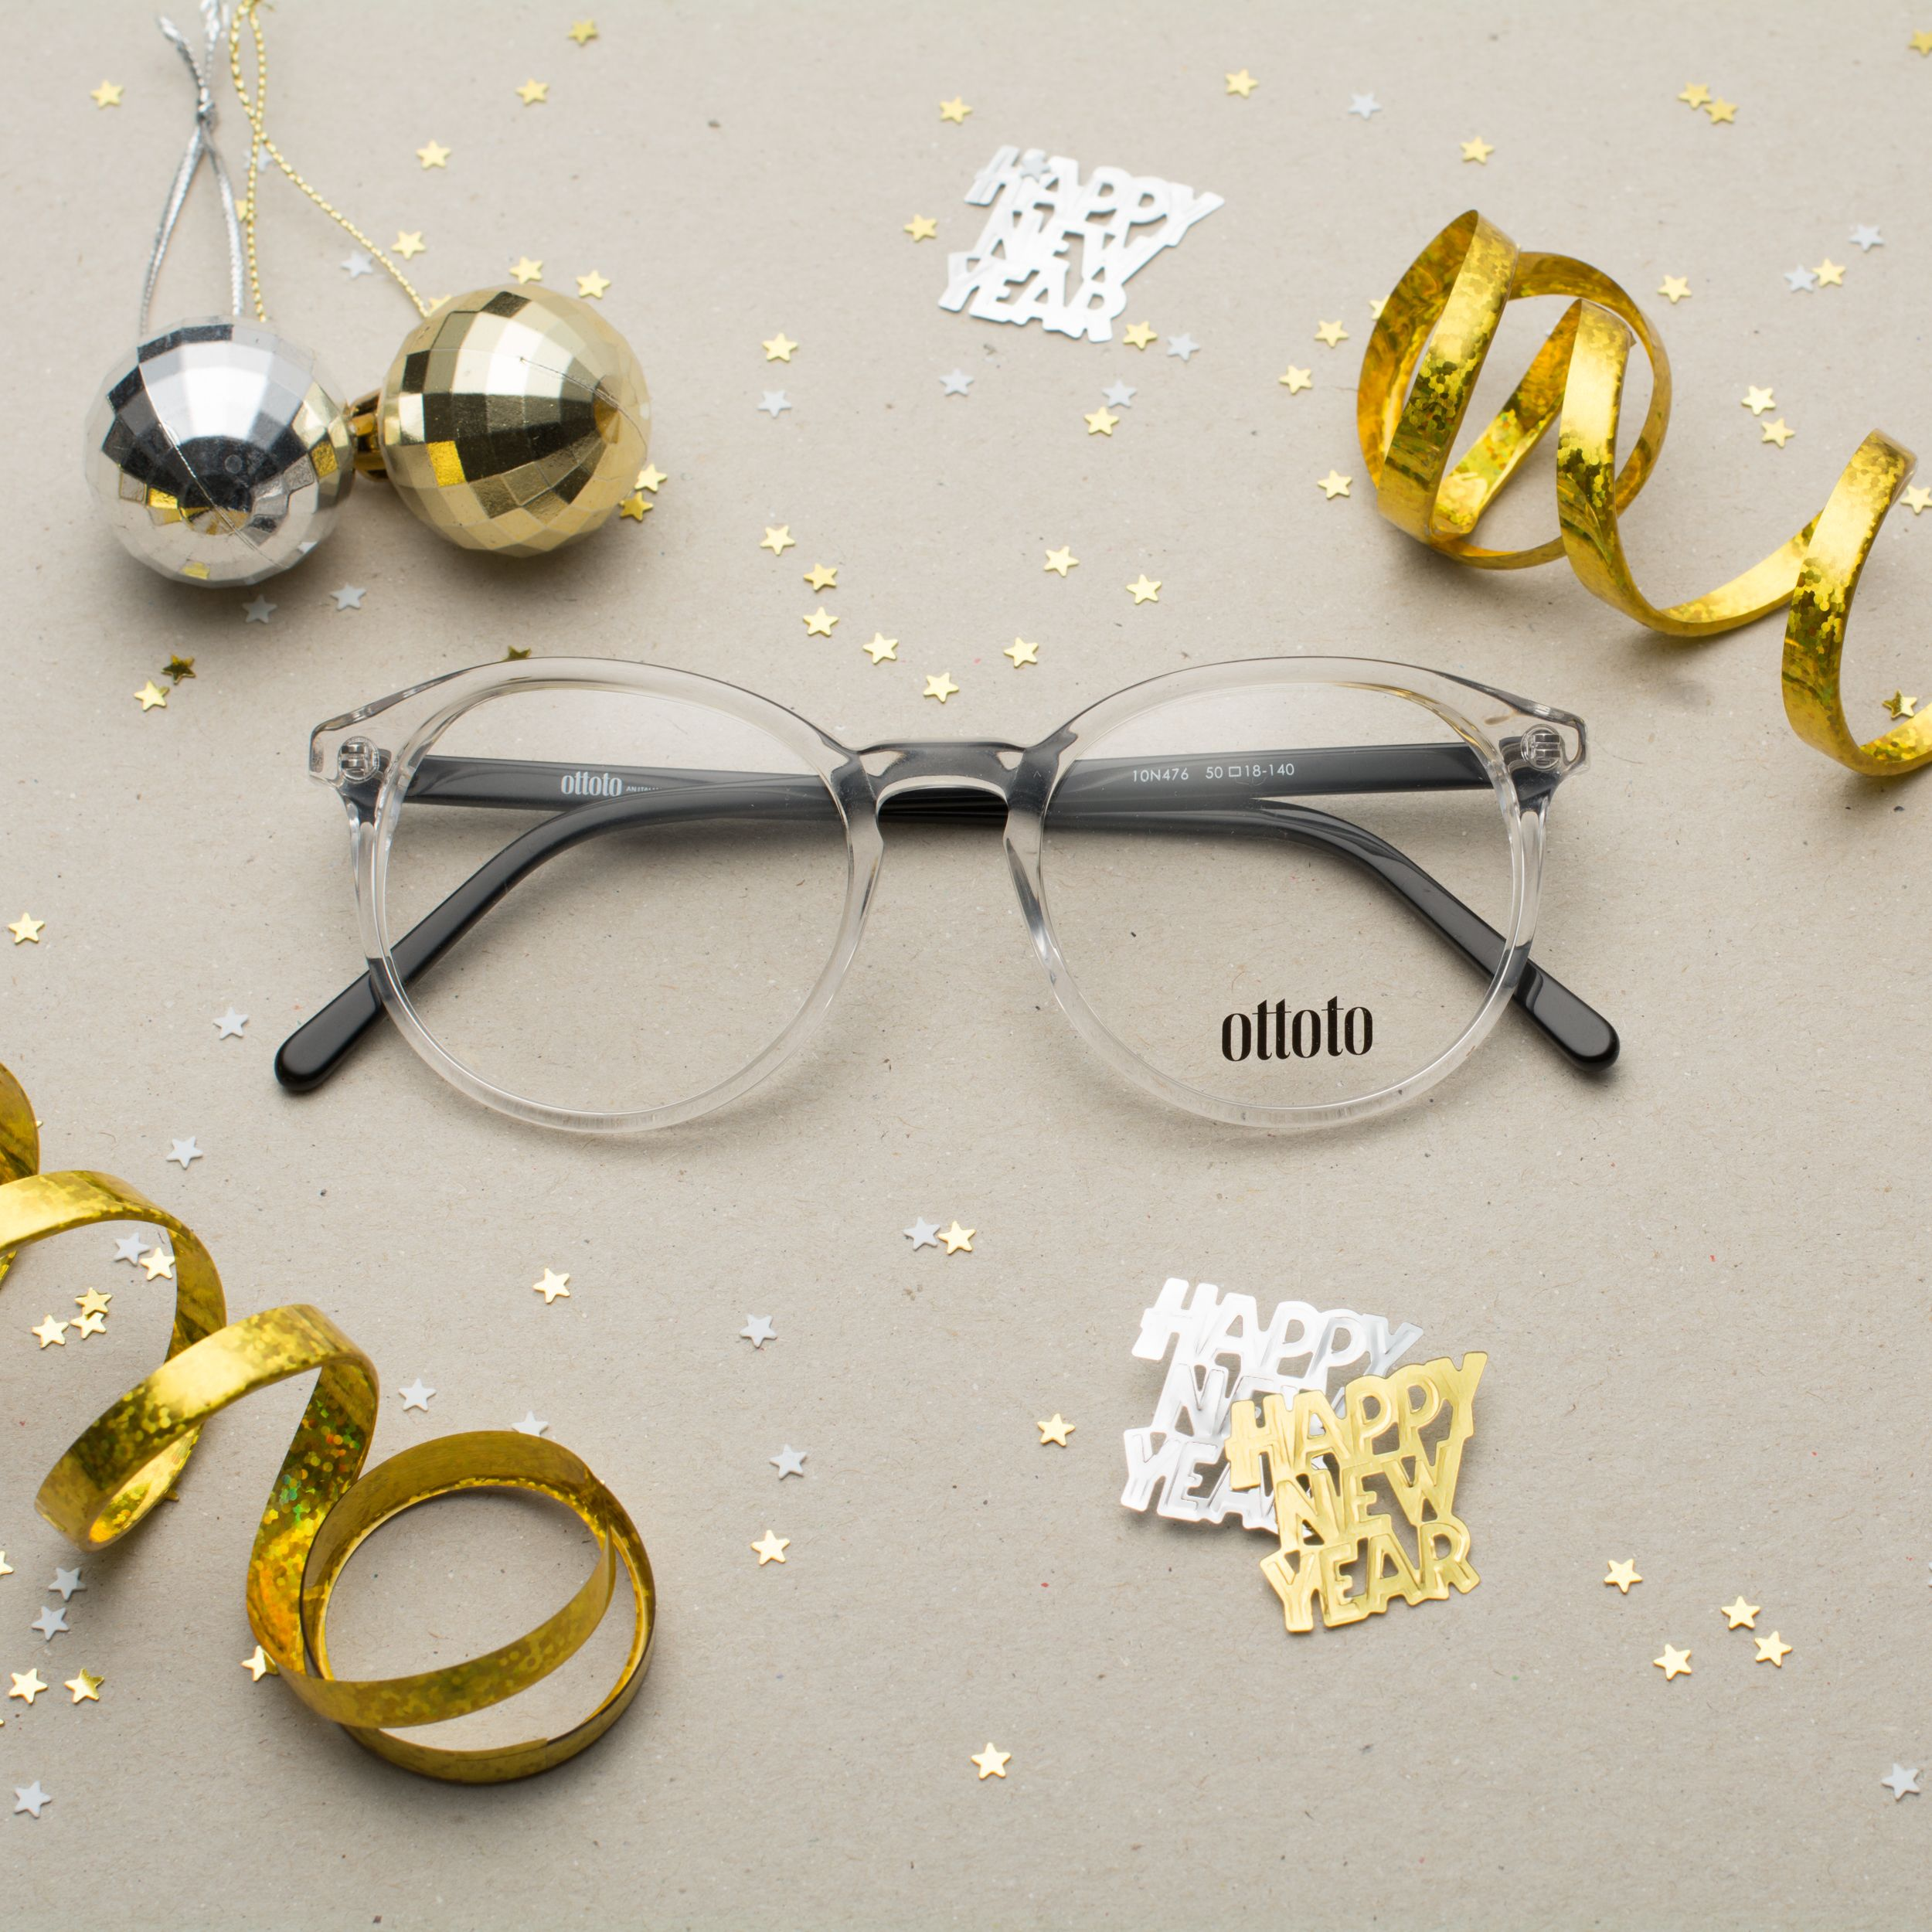 71c587405b Round clear frames in plastic for men and women. Happy New Year! Ring 2017  in style with our Ottoto collection found exclusively at GlassesUSA.com